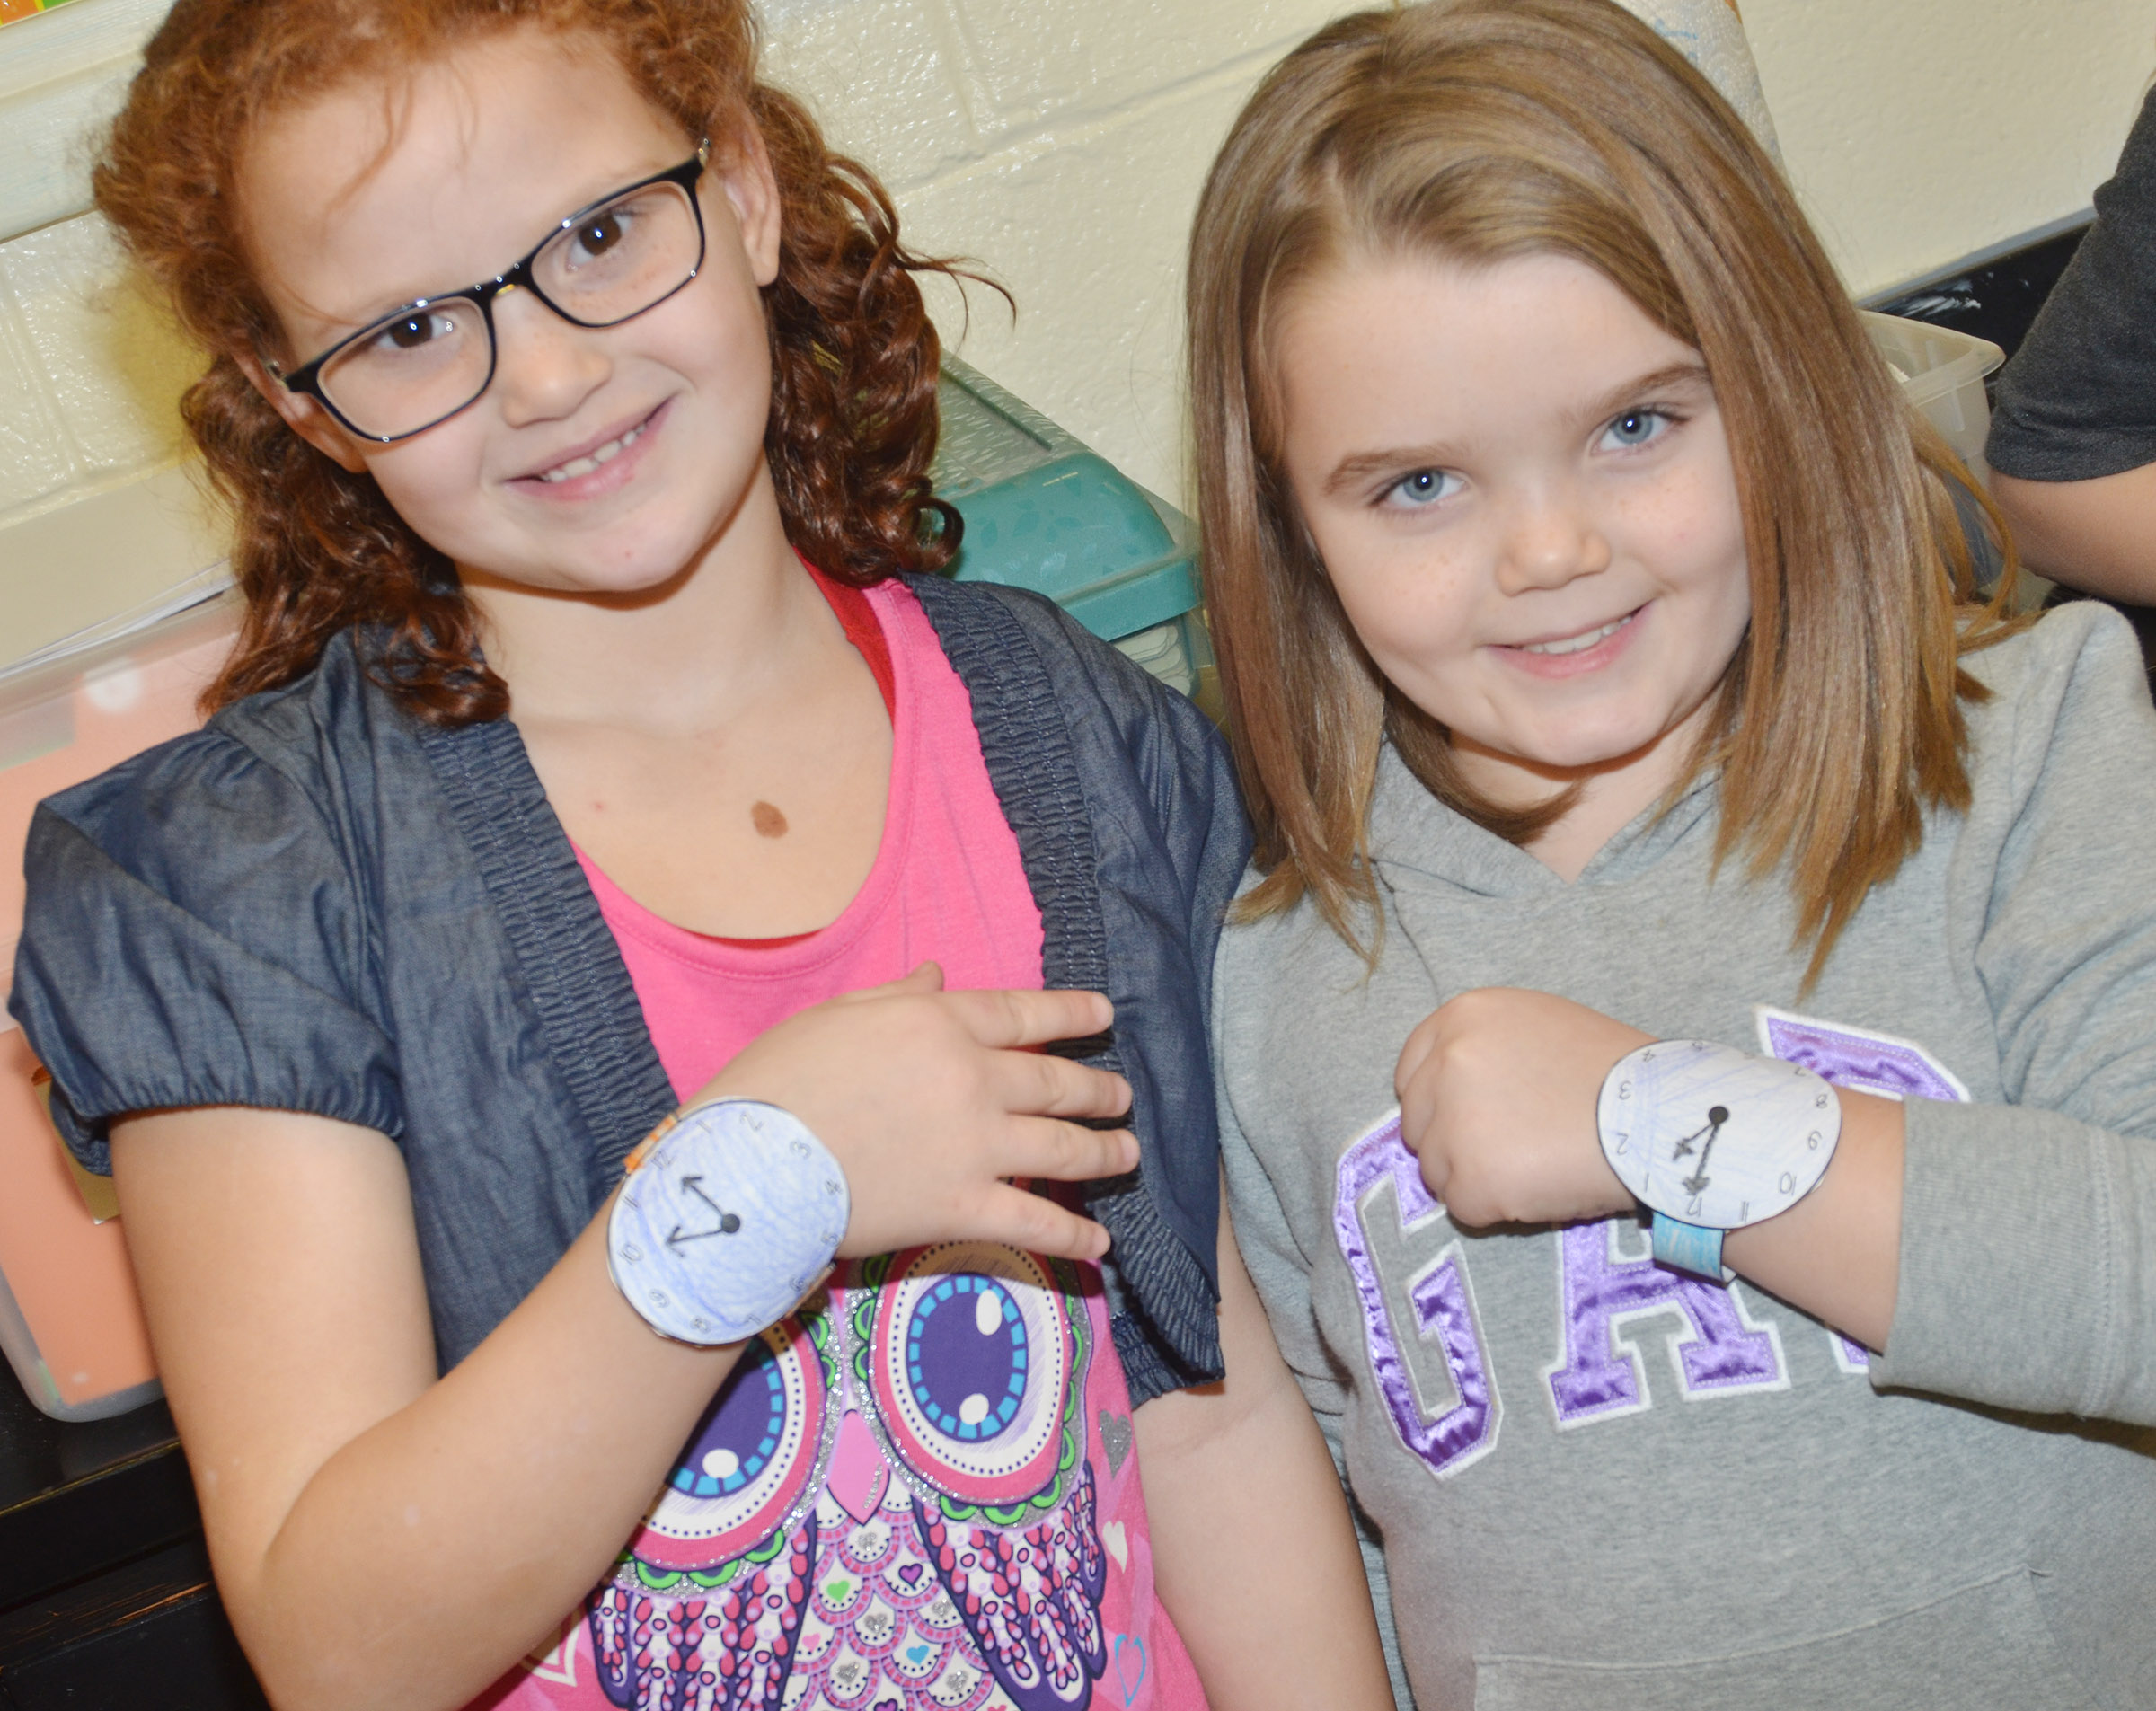 CES second-graders Analeigh Foster, at left, and Jaylin Christie model their watches.